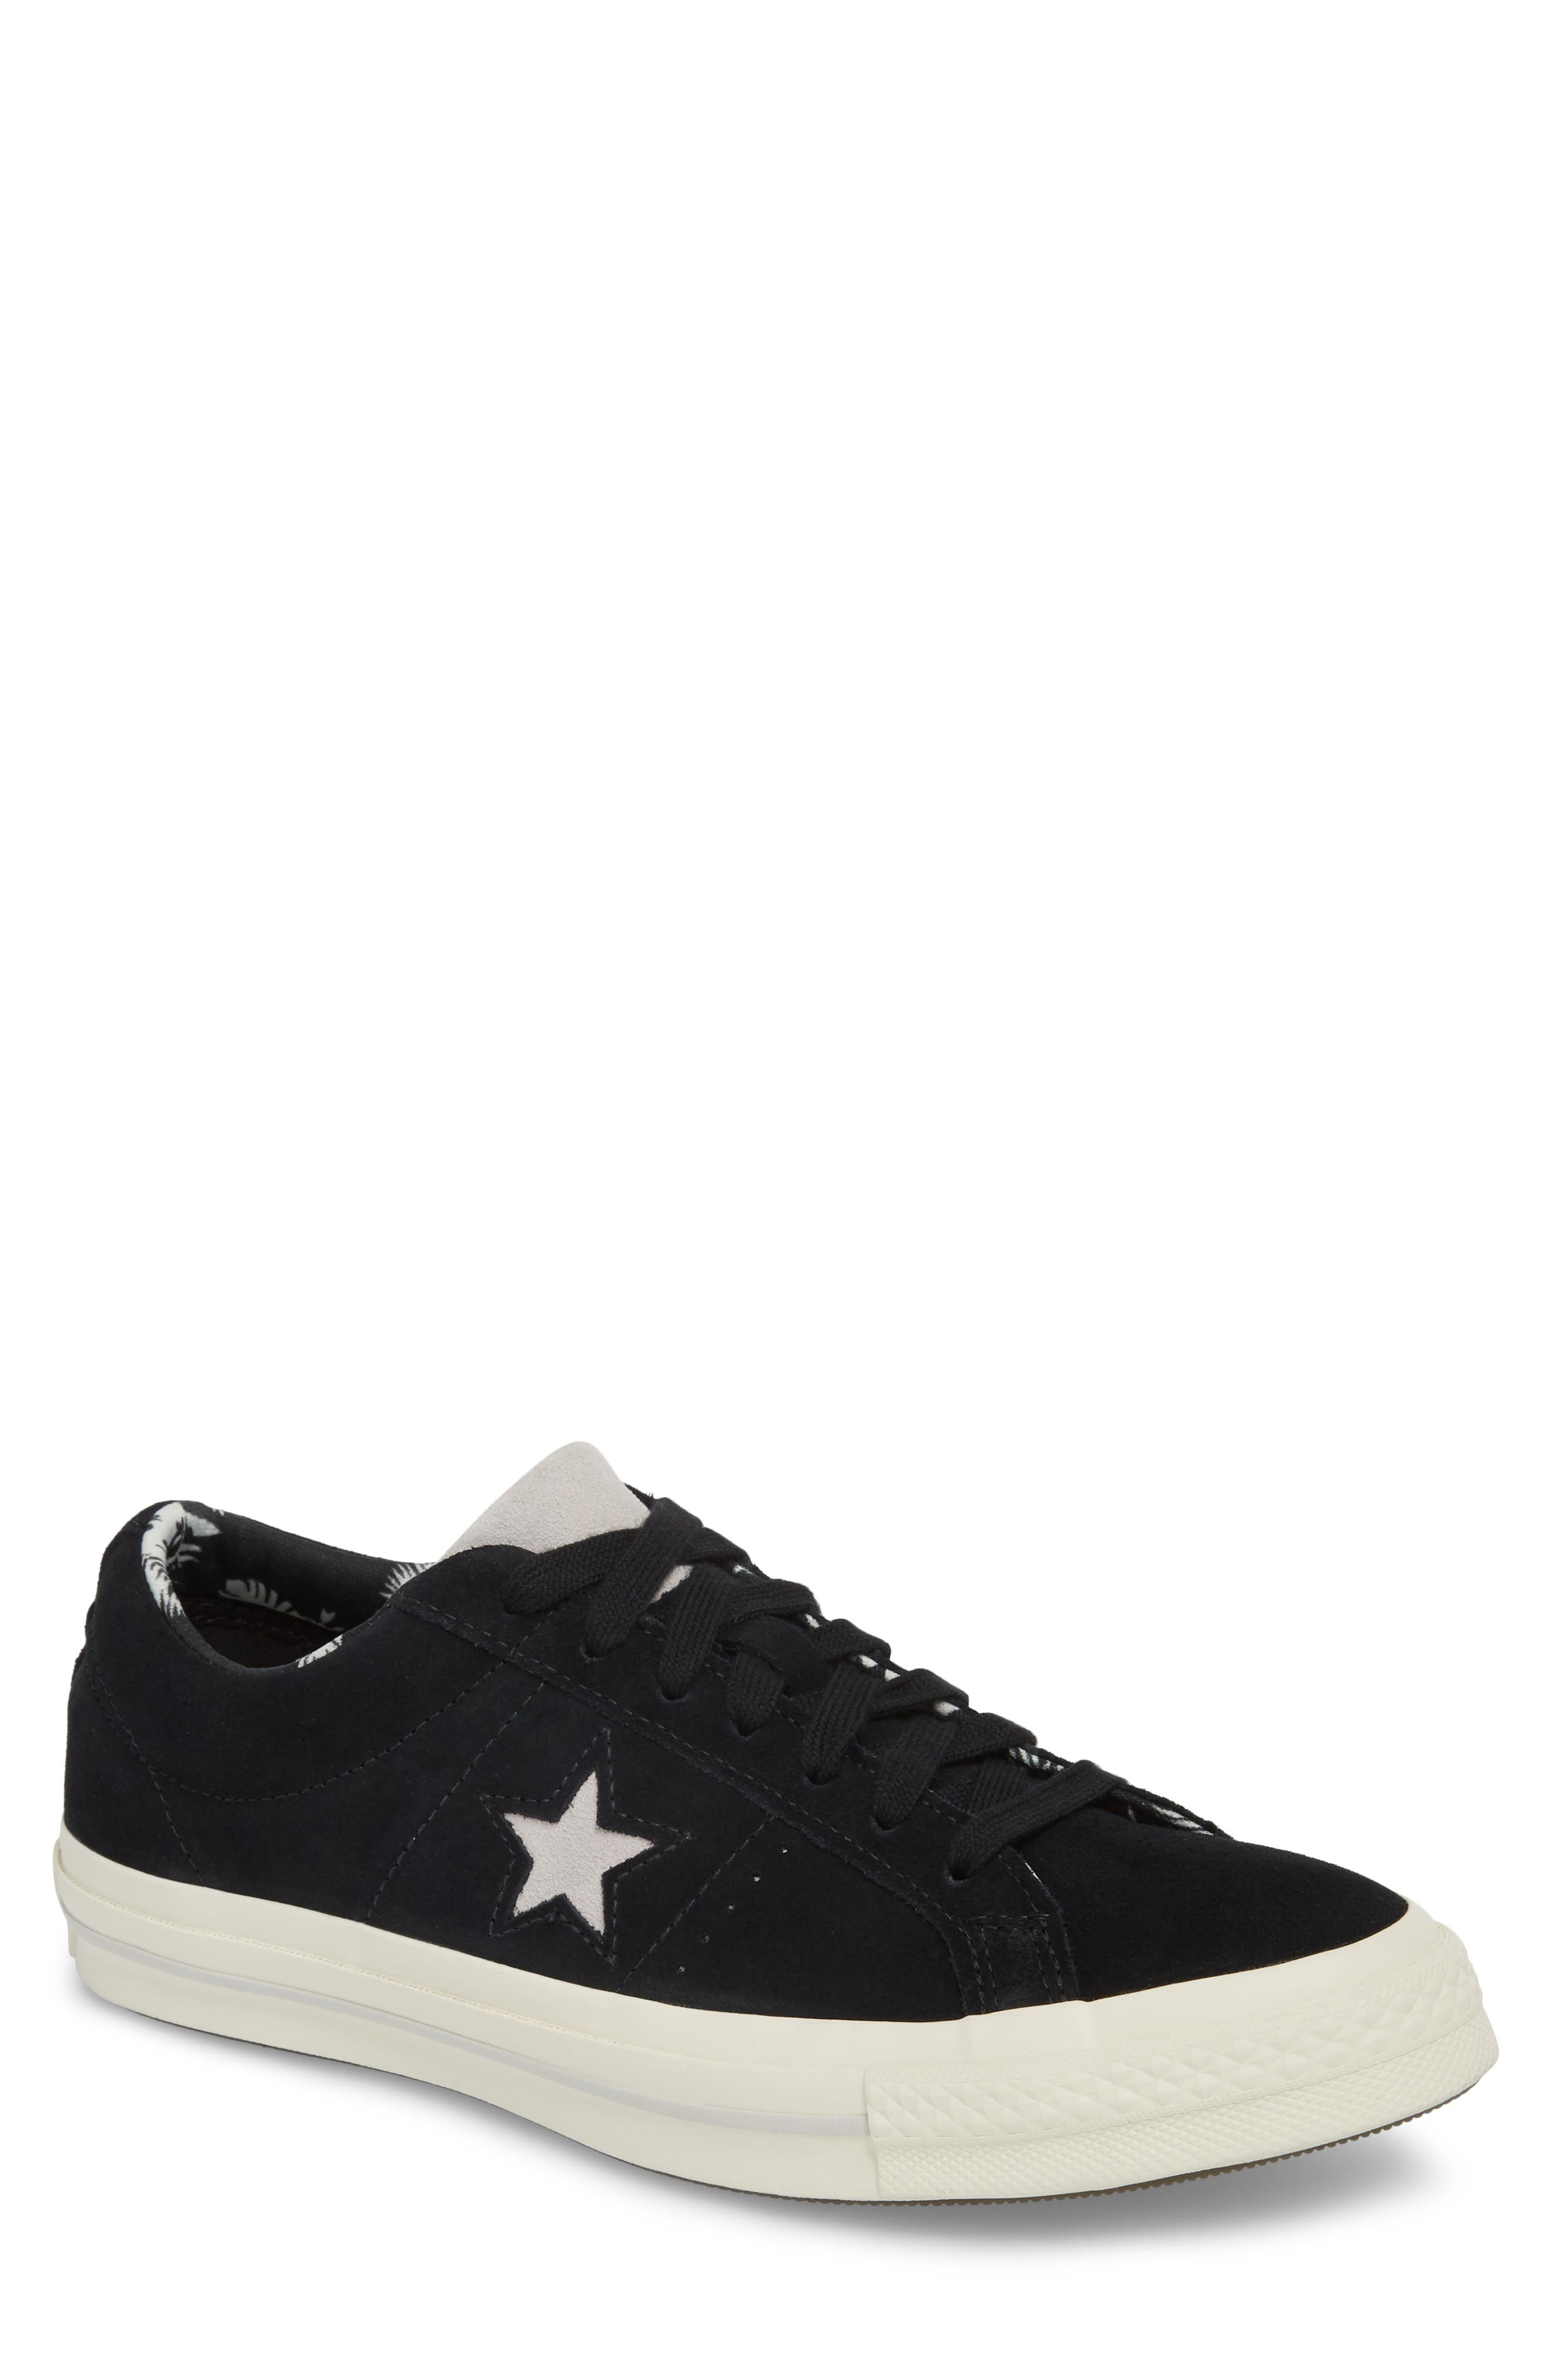 One-Star Tropical Sneaker,                         Main,                         color, 001